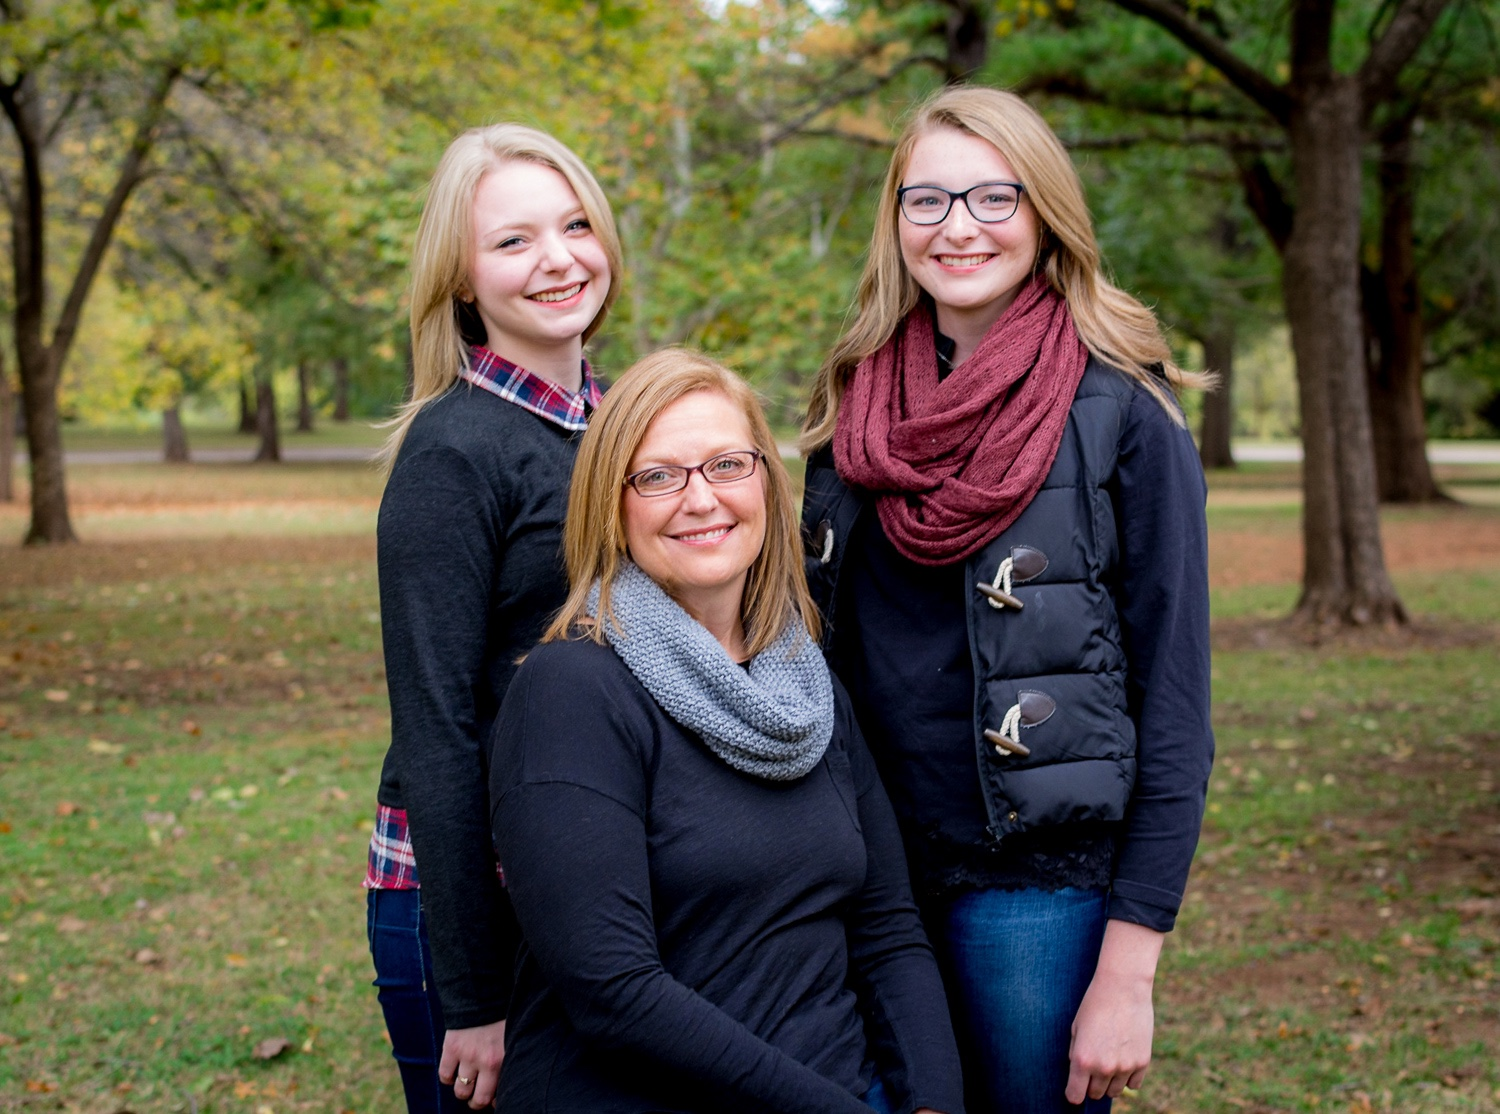 portrait 3 ladies in trees - The Importance of Getting the Image Right In-Camera